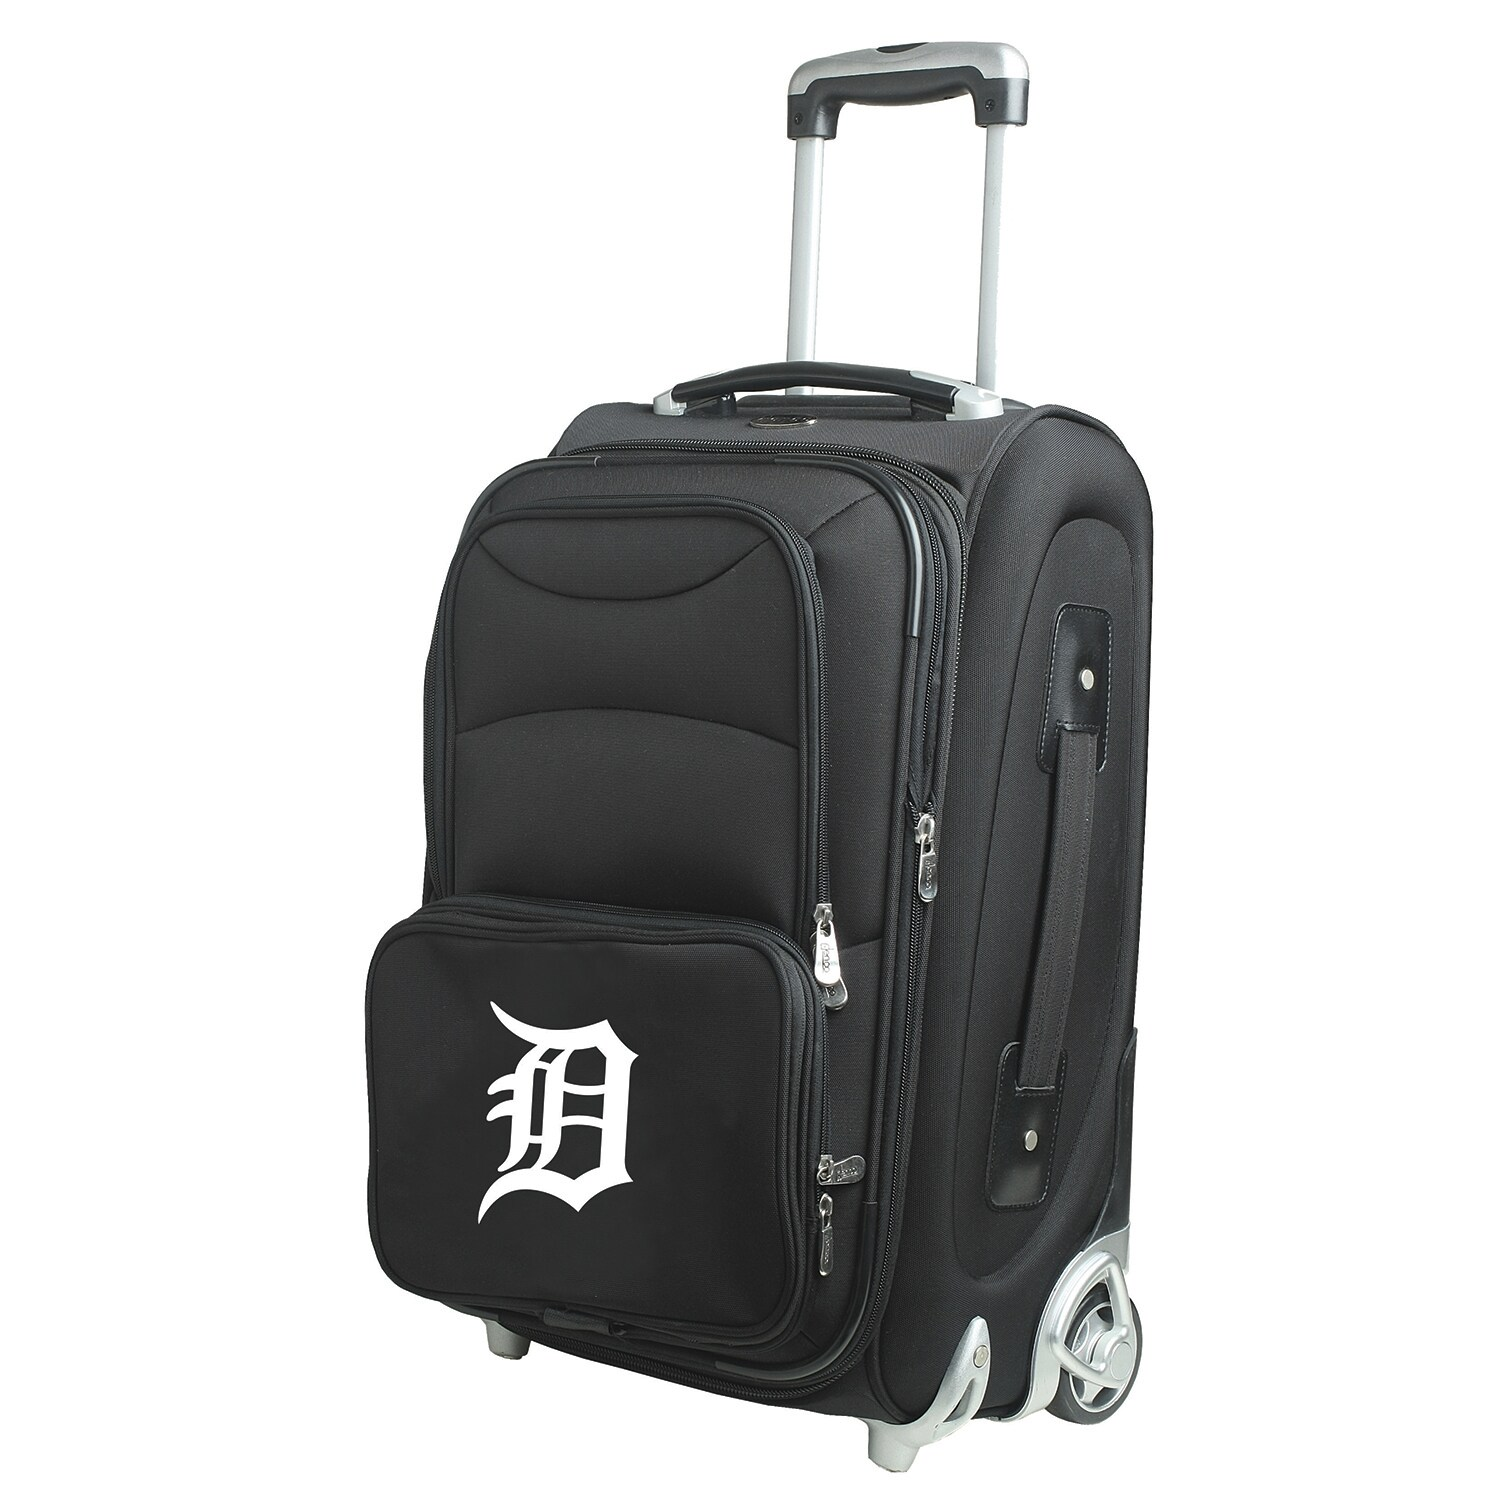 "Detroit Tigers 21"" Rolling Carry-On Suitcase"